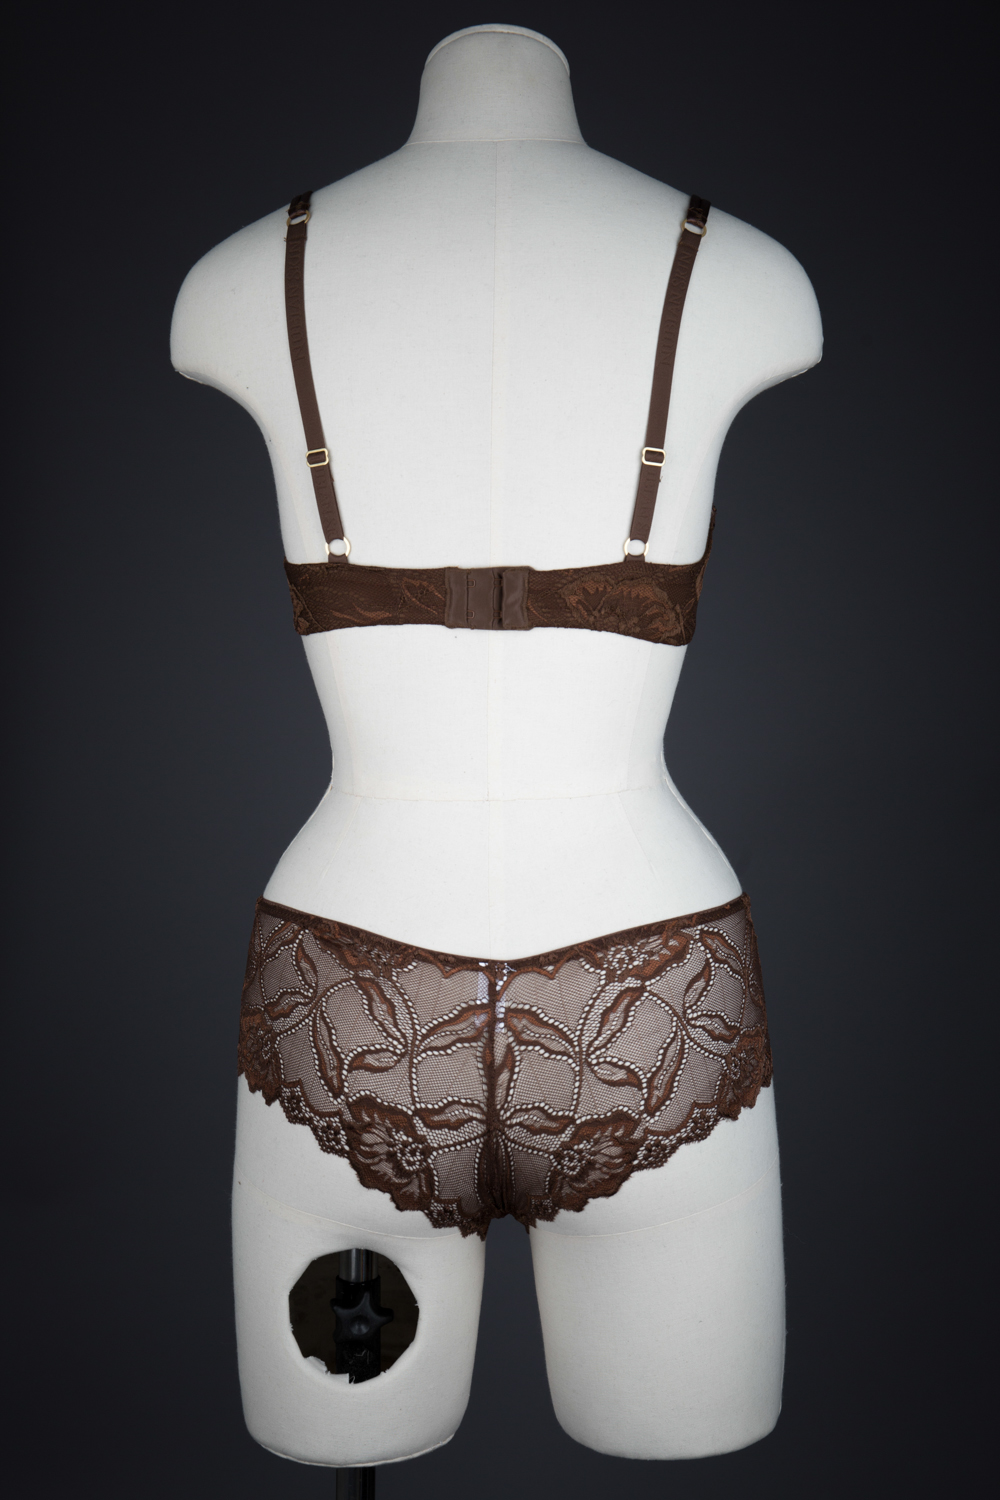 'Berry' Push Up Bra & Lace Short by Nubian Skin, 2014, made in China for a UK based brand. The Underpinnings Museum. Photography by Tigz Rice.